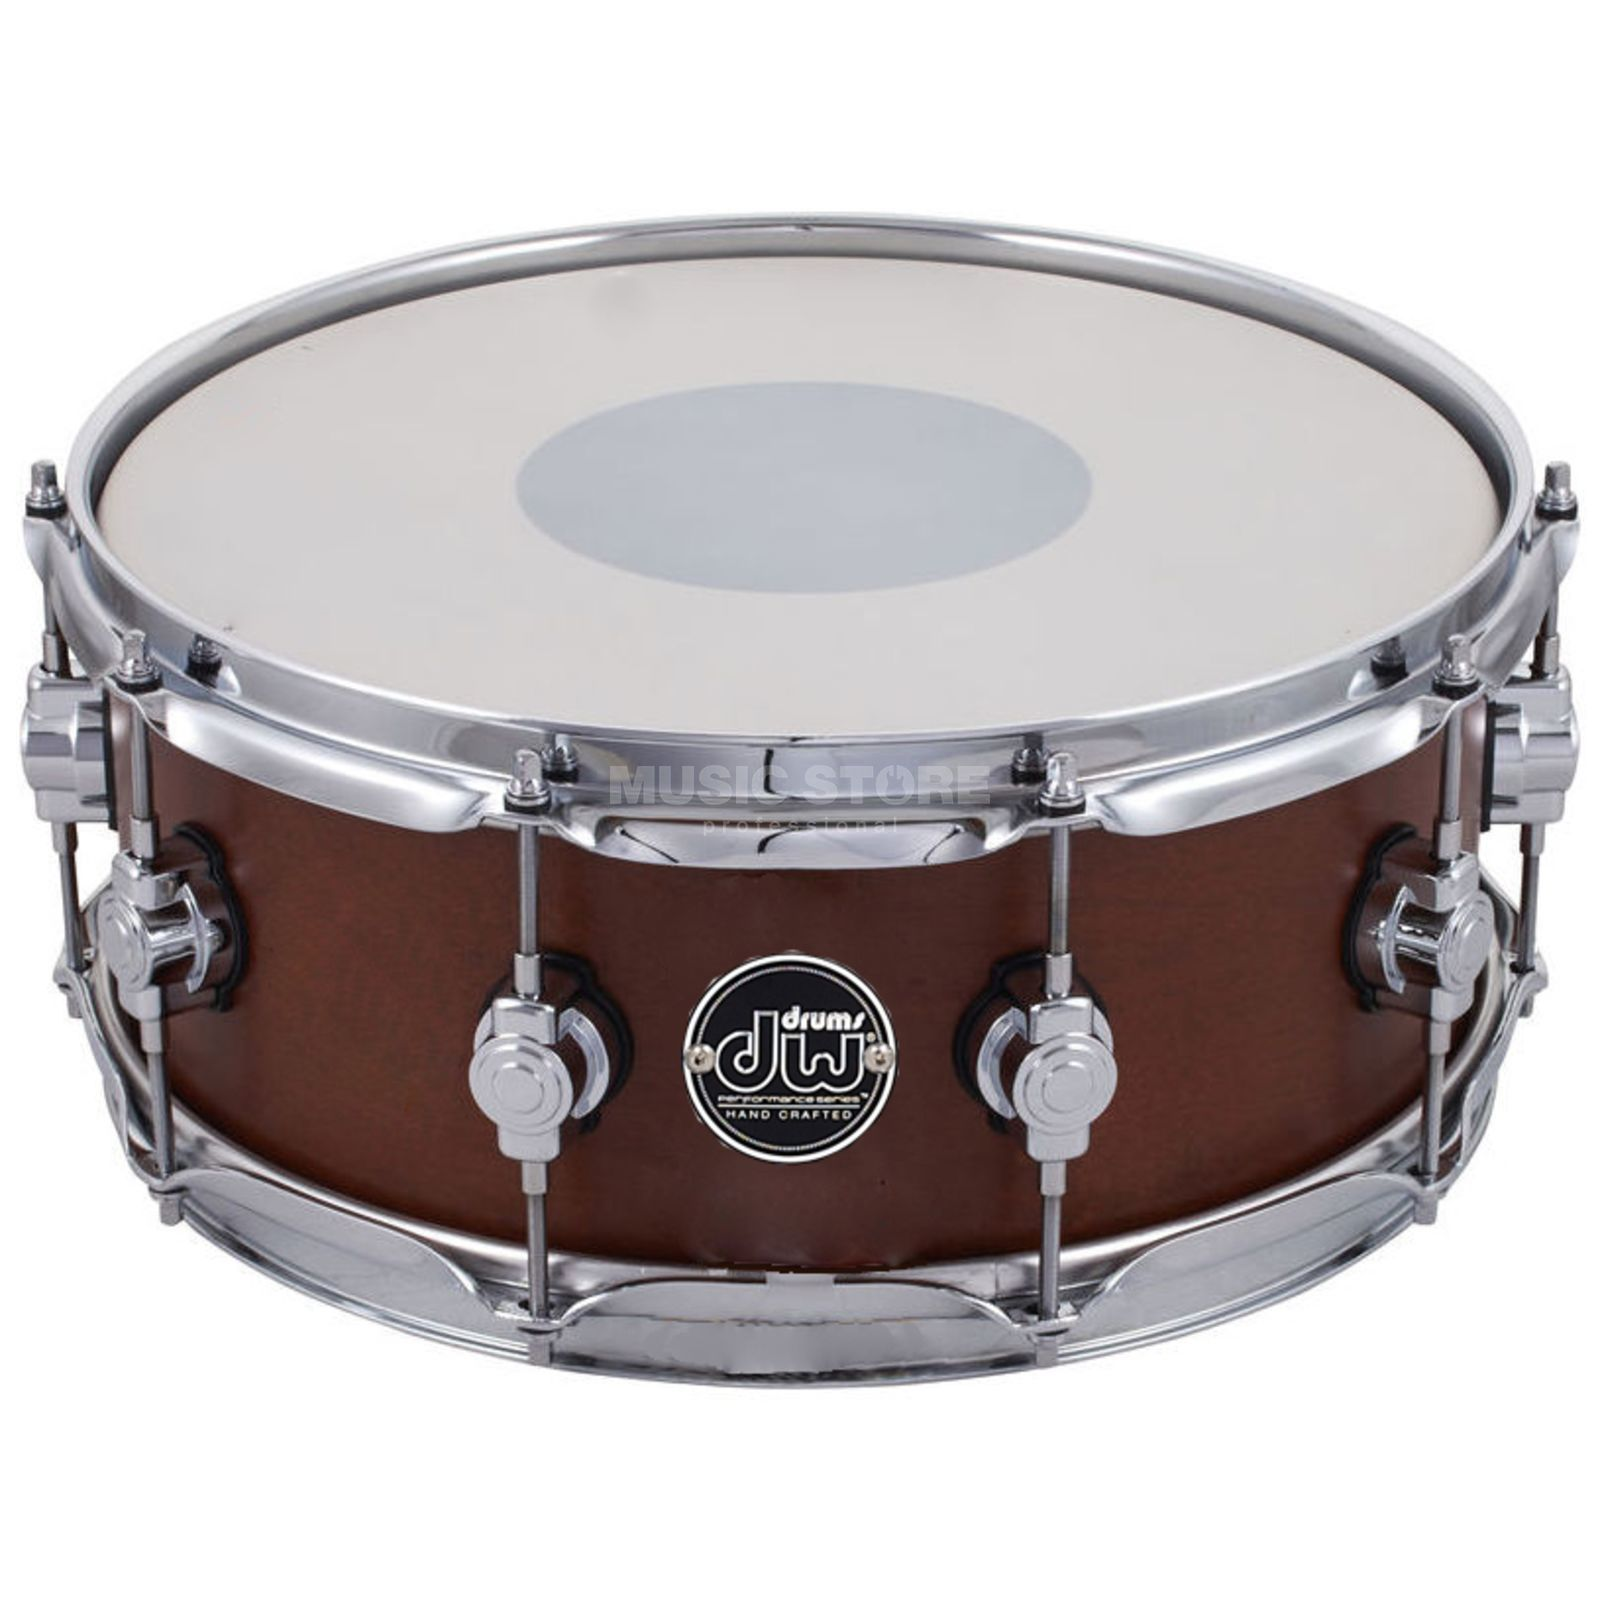 "Drum Workshop Performance Snare 14""x6,5"", Tobacco Produktbild"